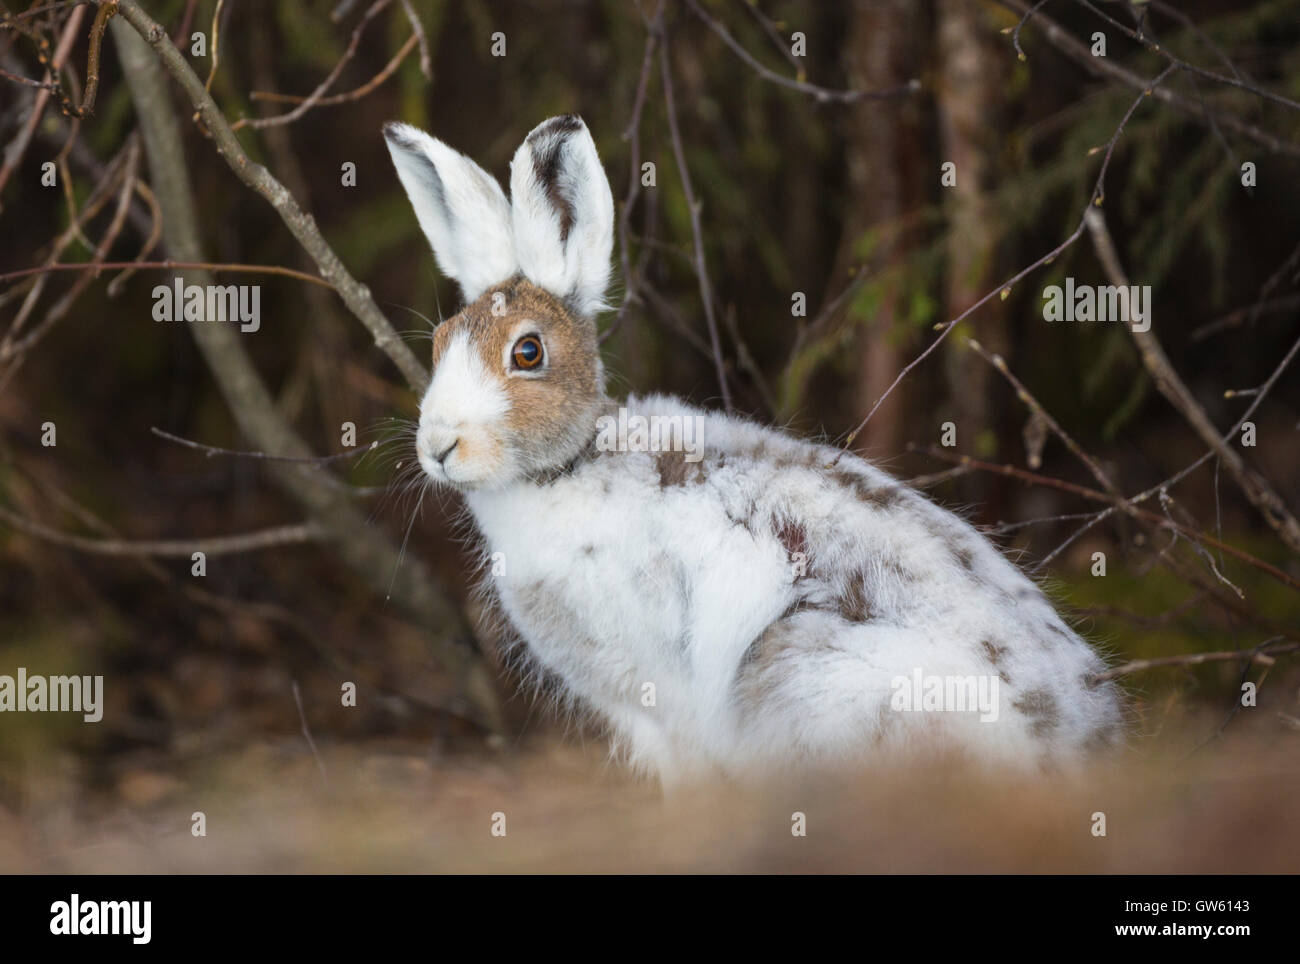 Mountain hare sitting and looking in to the camera, Gällivare, Swedish Lapland, Sweden - Stock Image